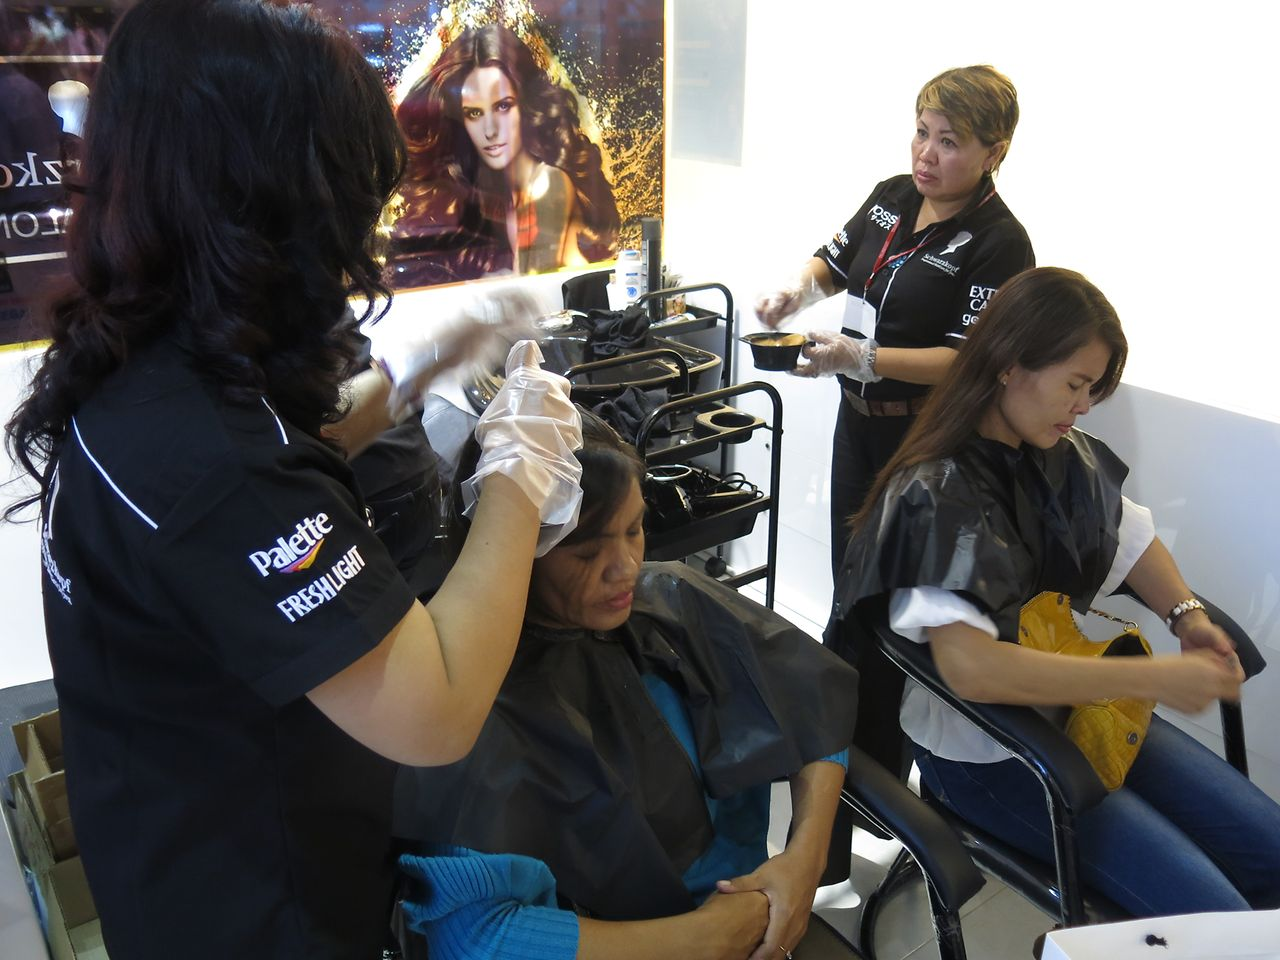 At the new Schwarzkopf Mini Salon, consumers are able to consult directly with stylists and get free service.